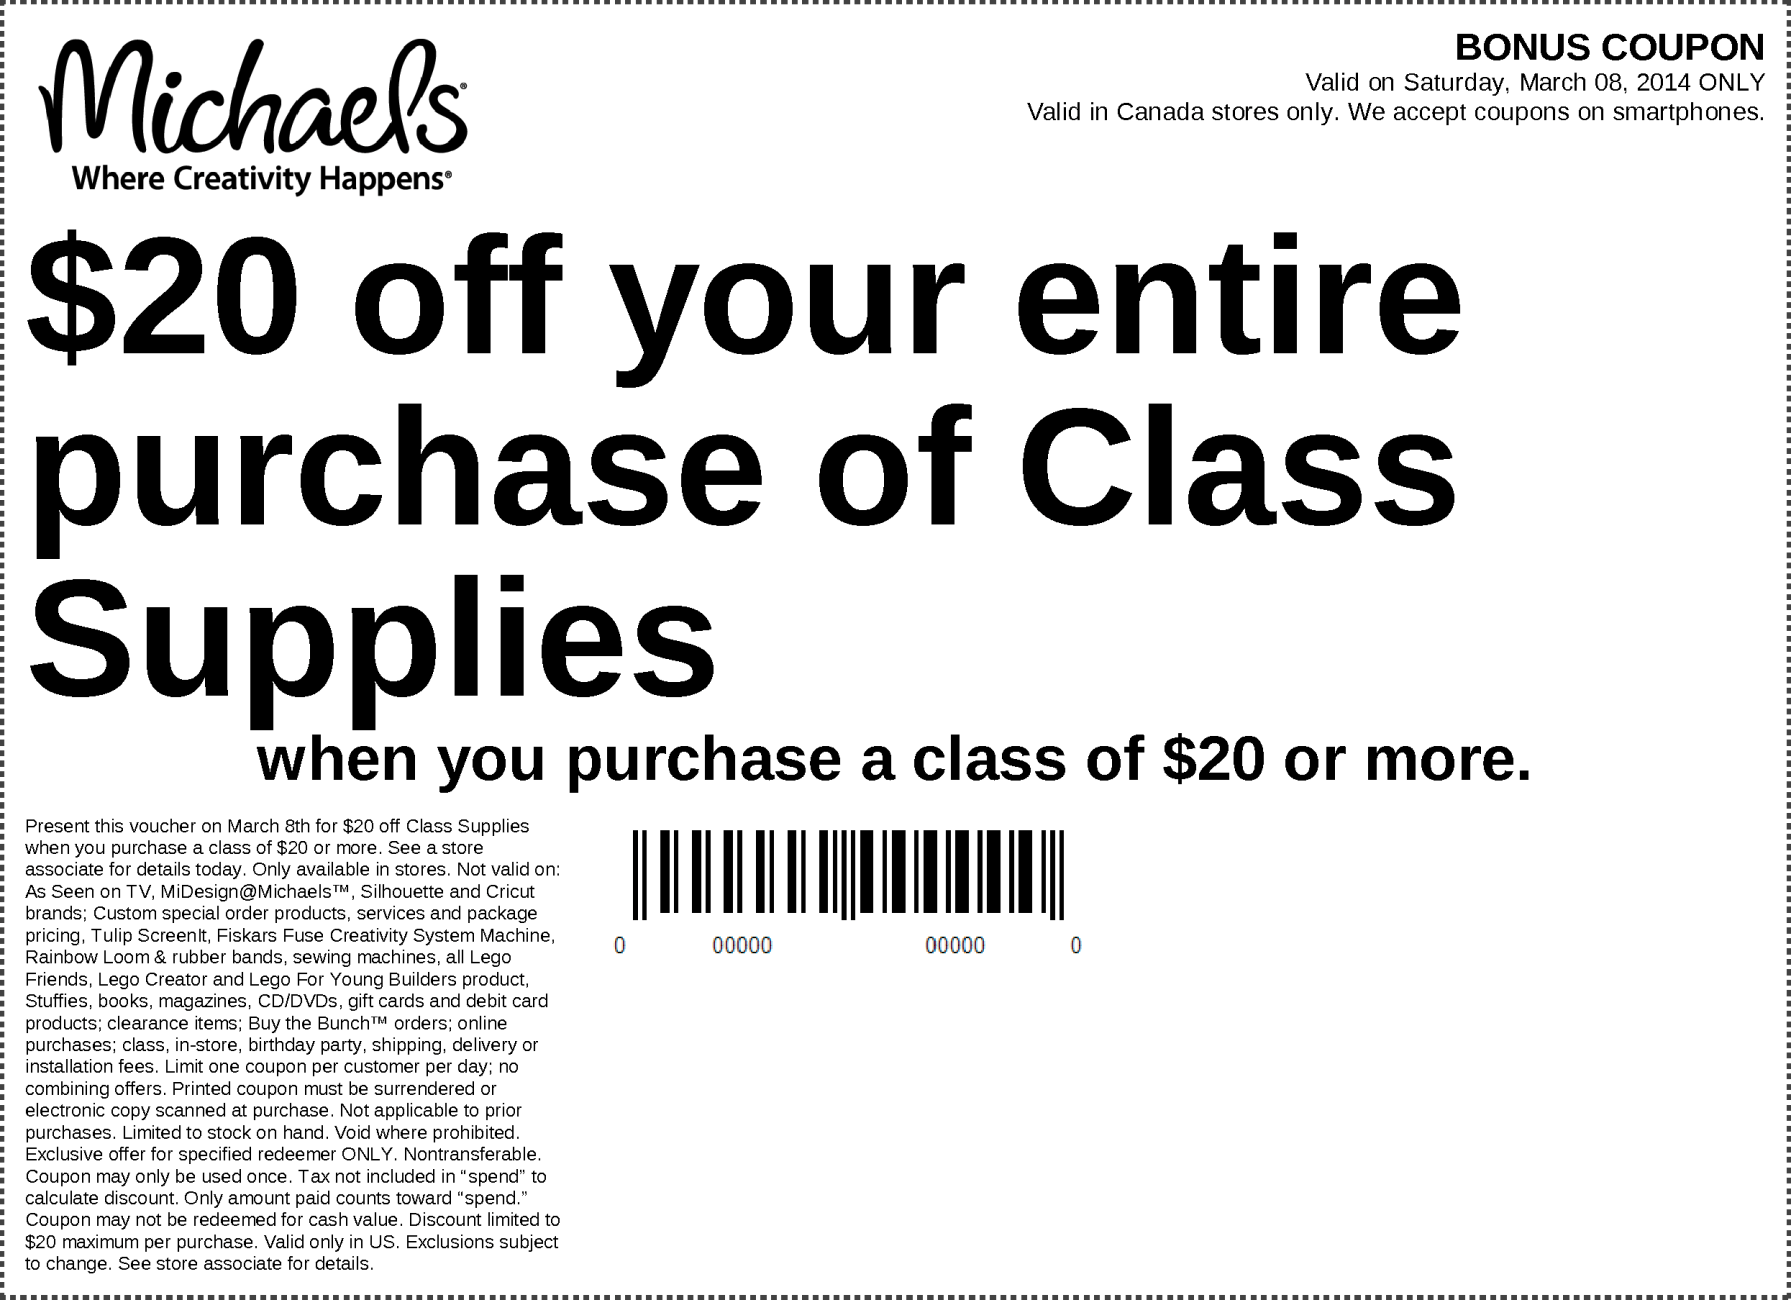 Current Michaels Printable Coupons 2014